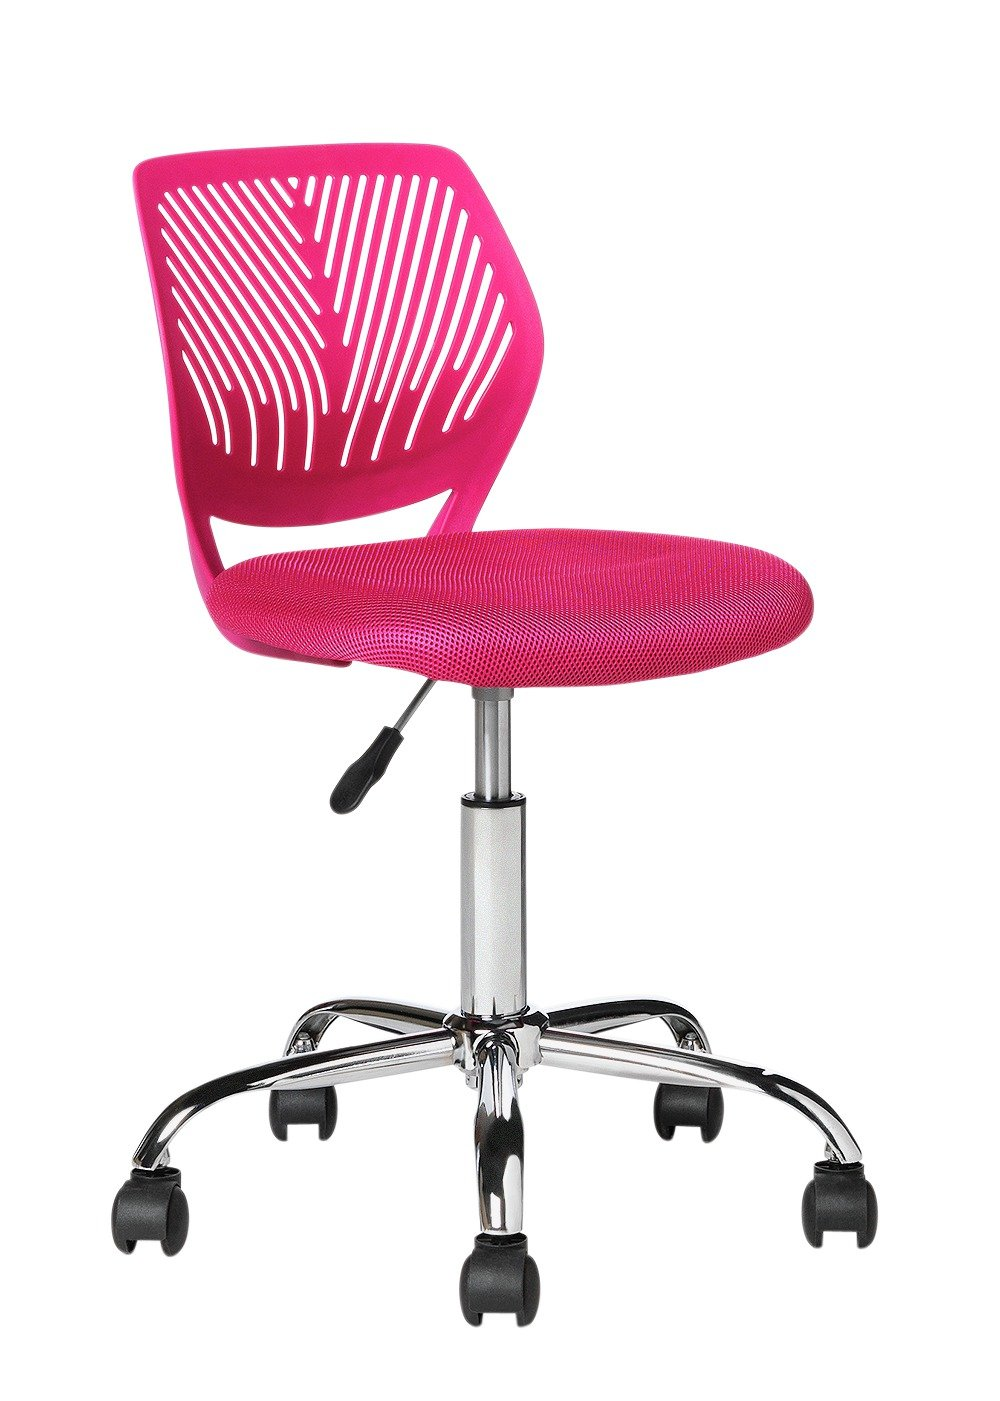 Mesh Gas Lift Height Adjustable Office Chair   Pink554/8330